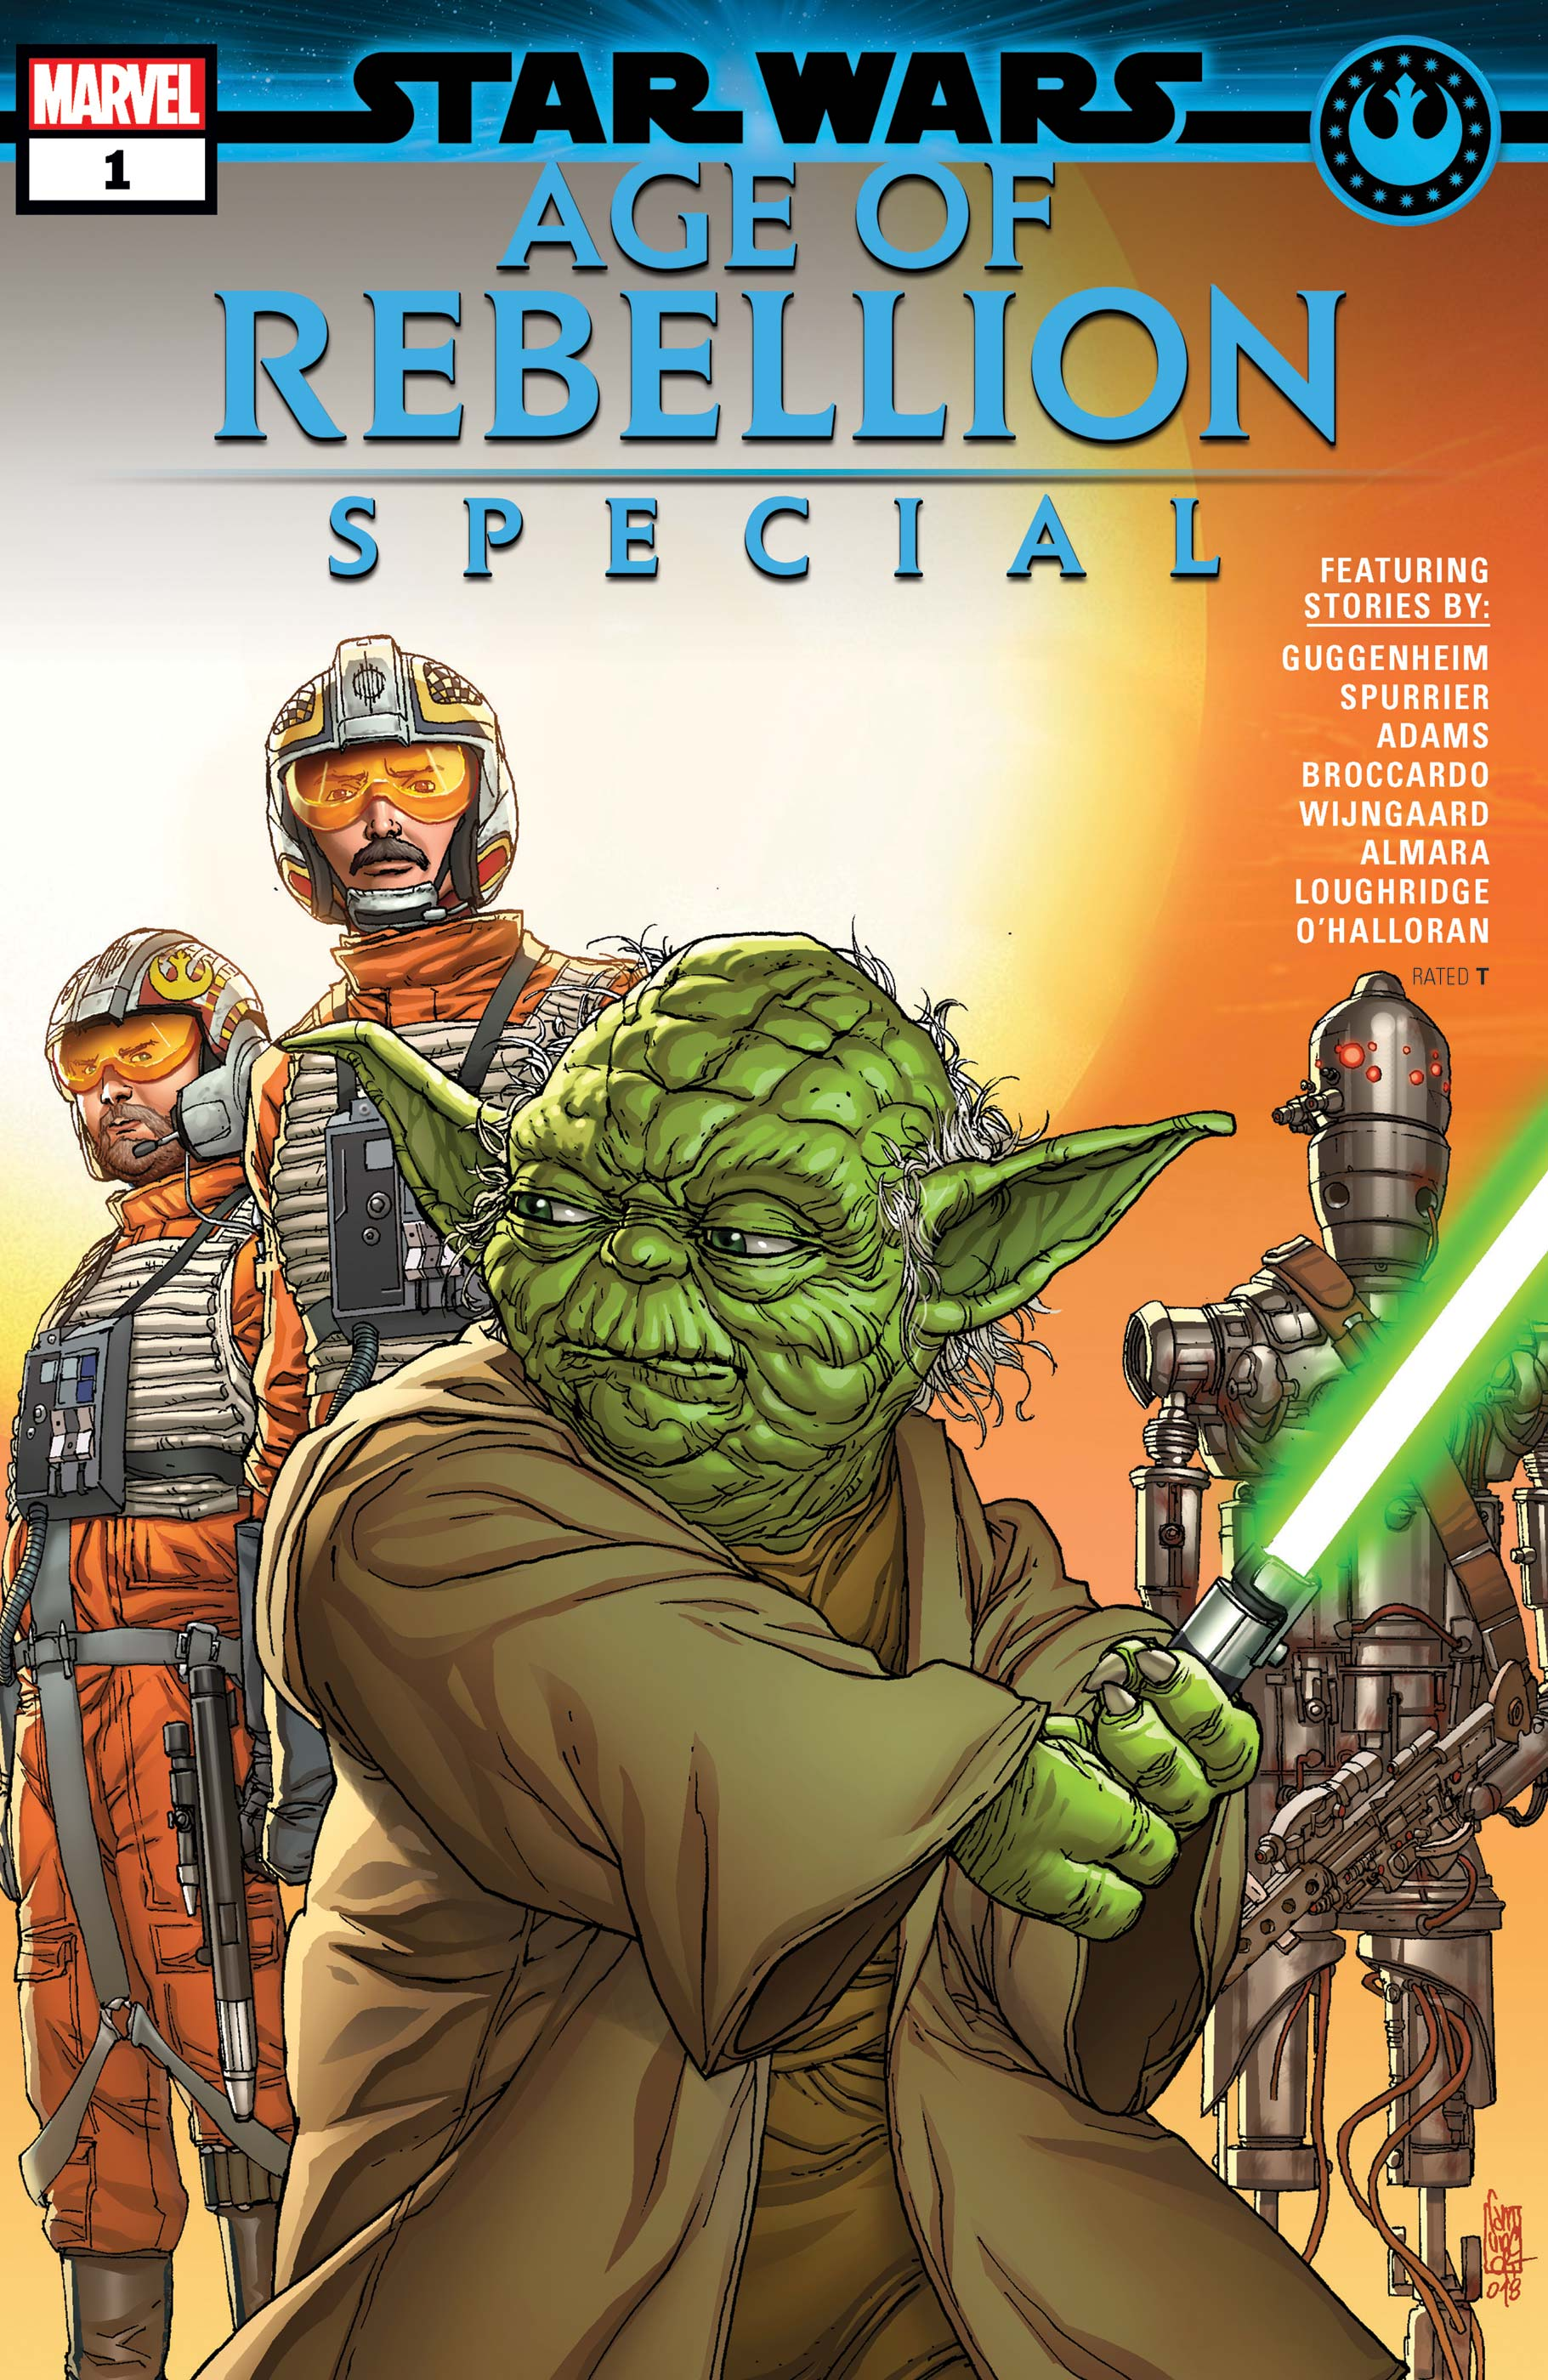 Star Wars Age of Rebellion Special #1 Main Cover STOCK PHOTO Marvel 2019